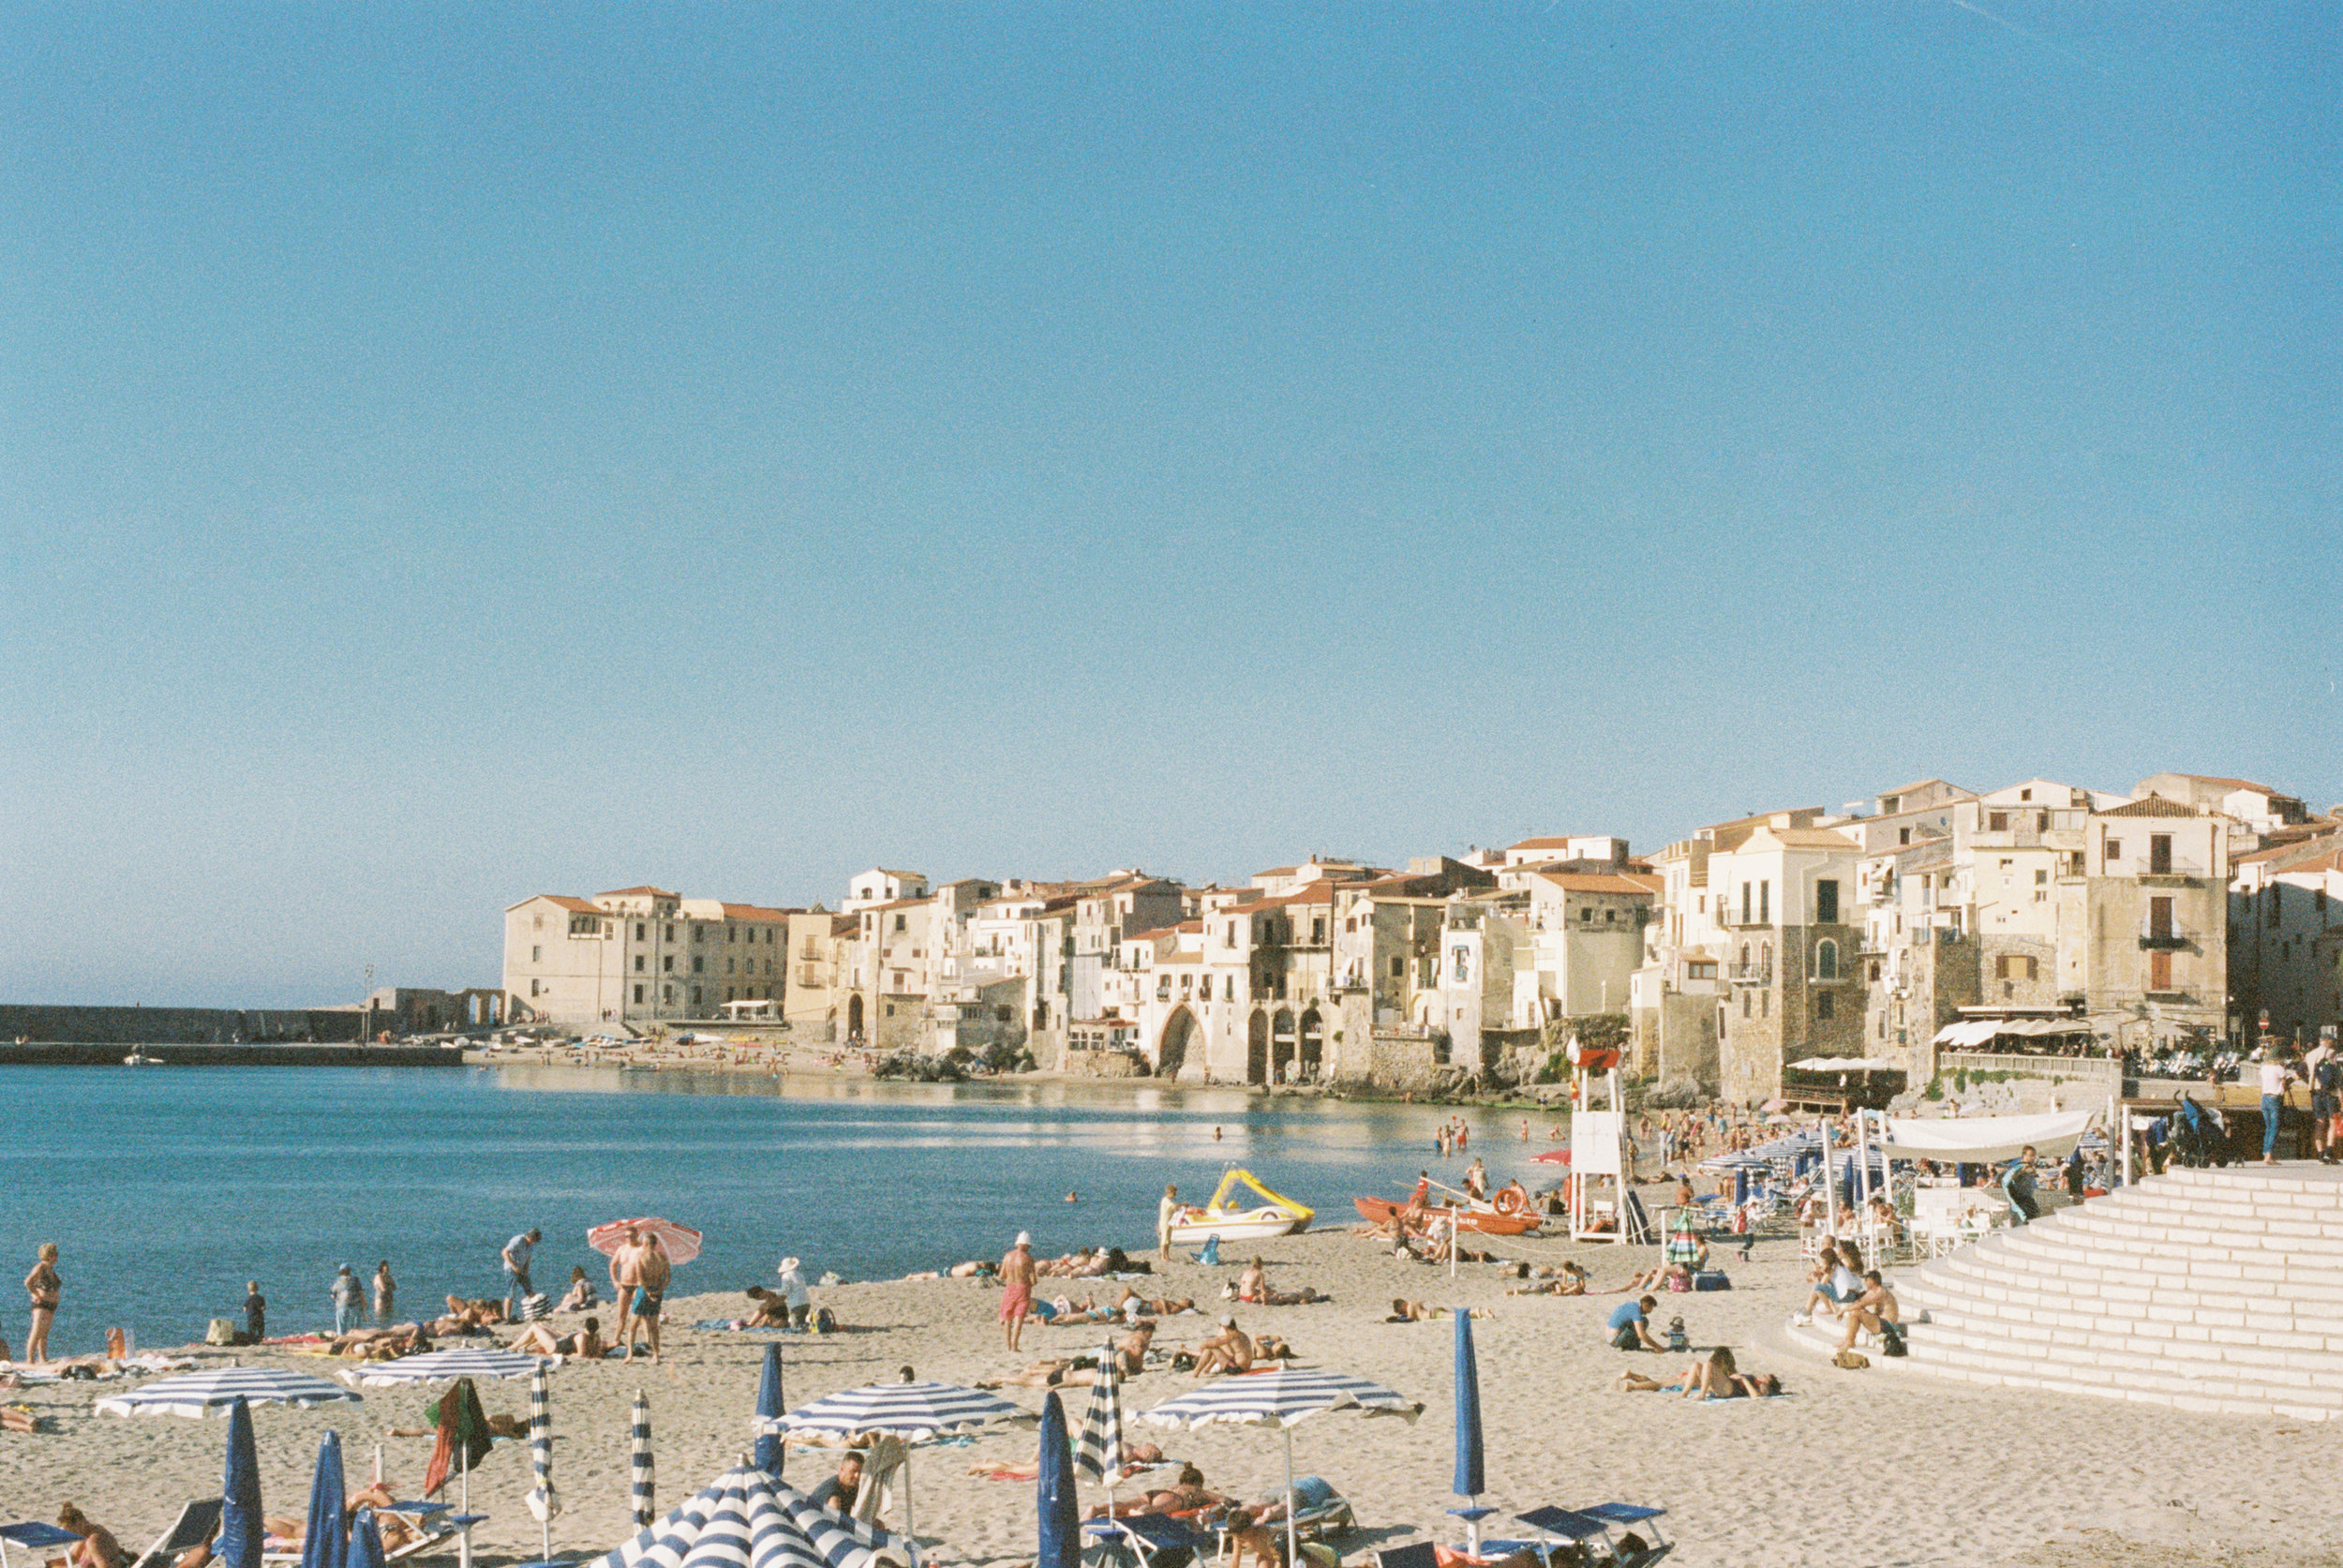 summer vacation by the sea in cefalu, sicily